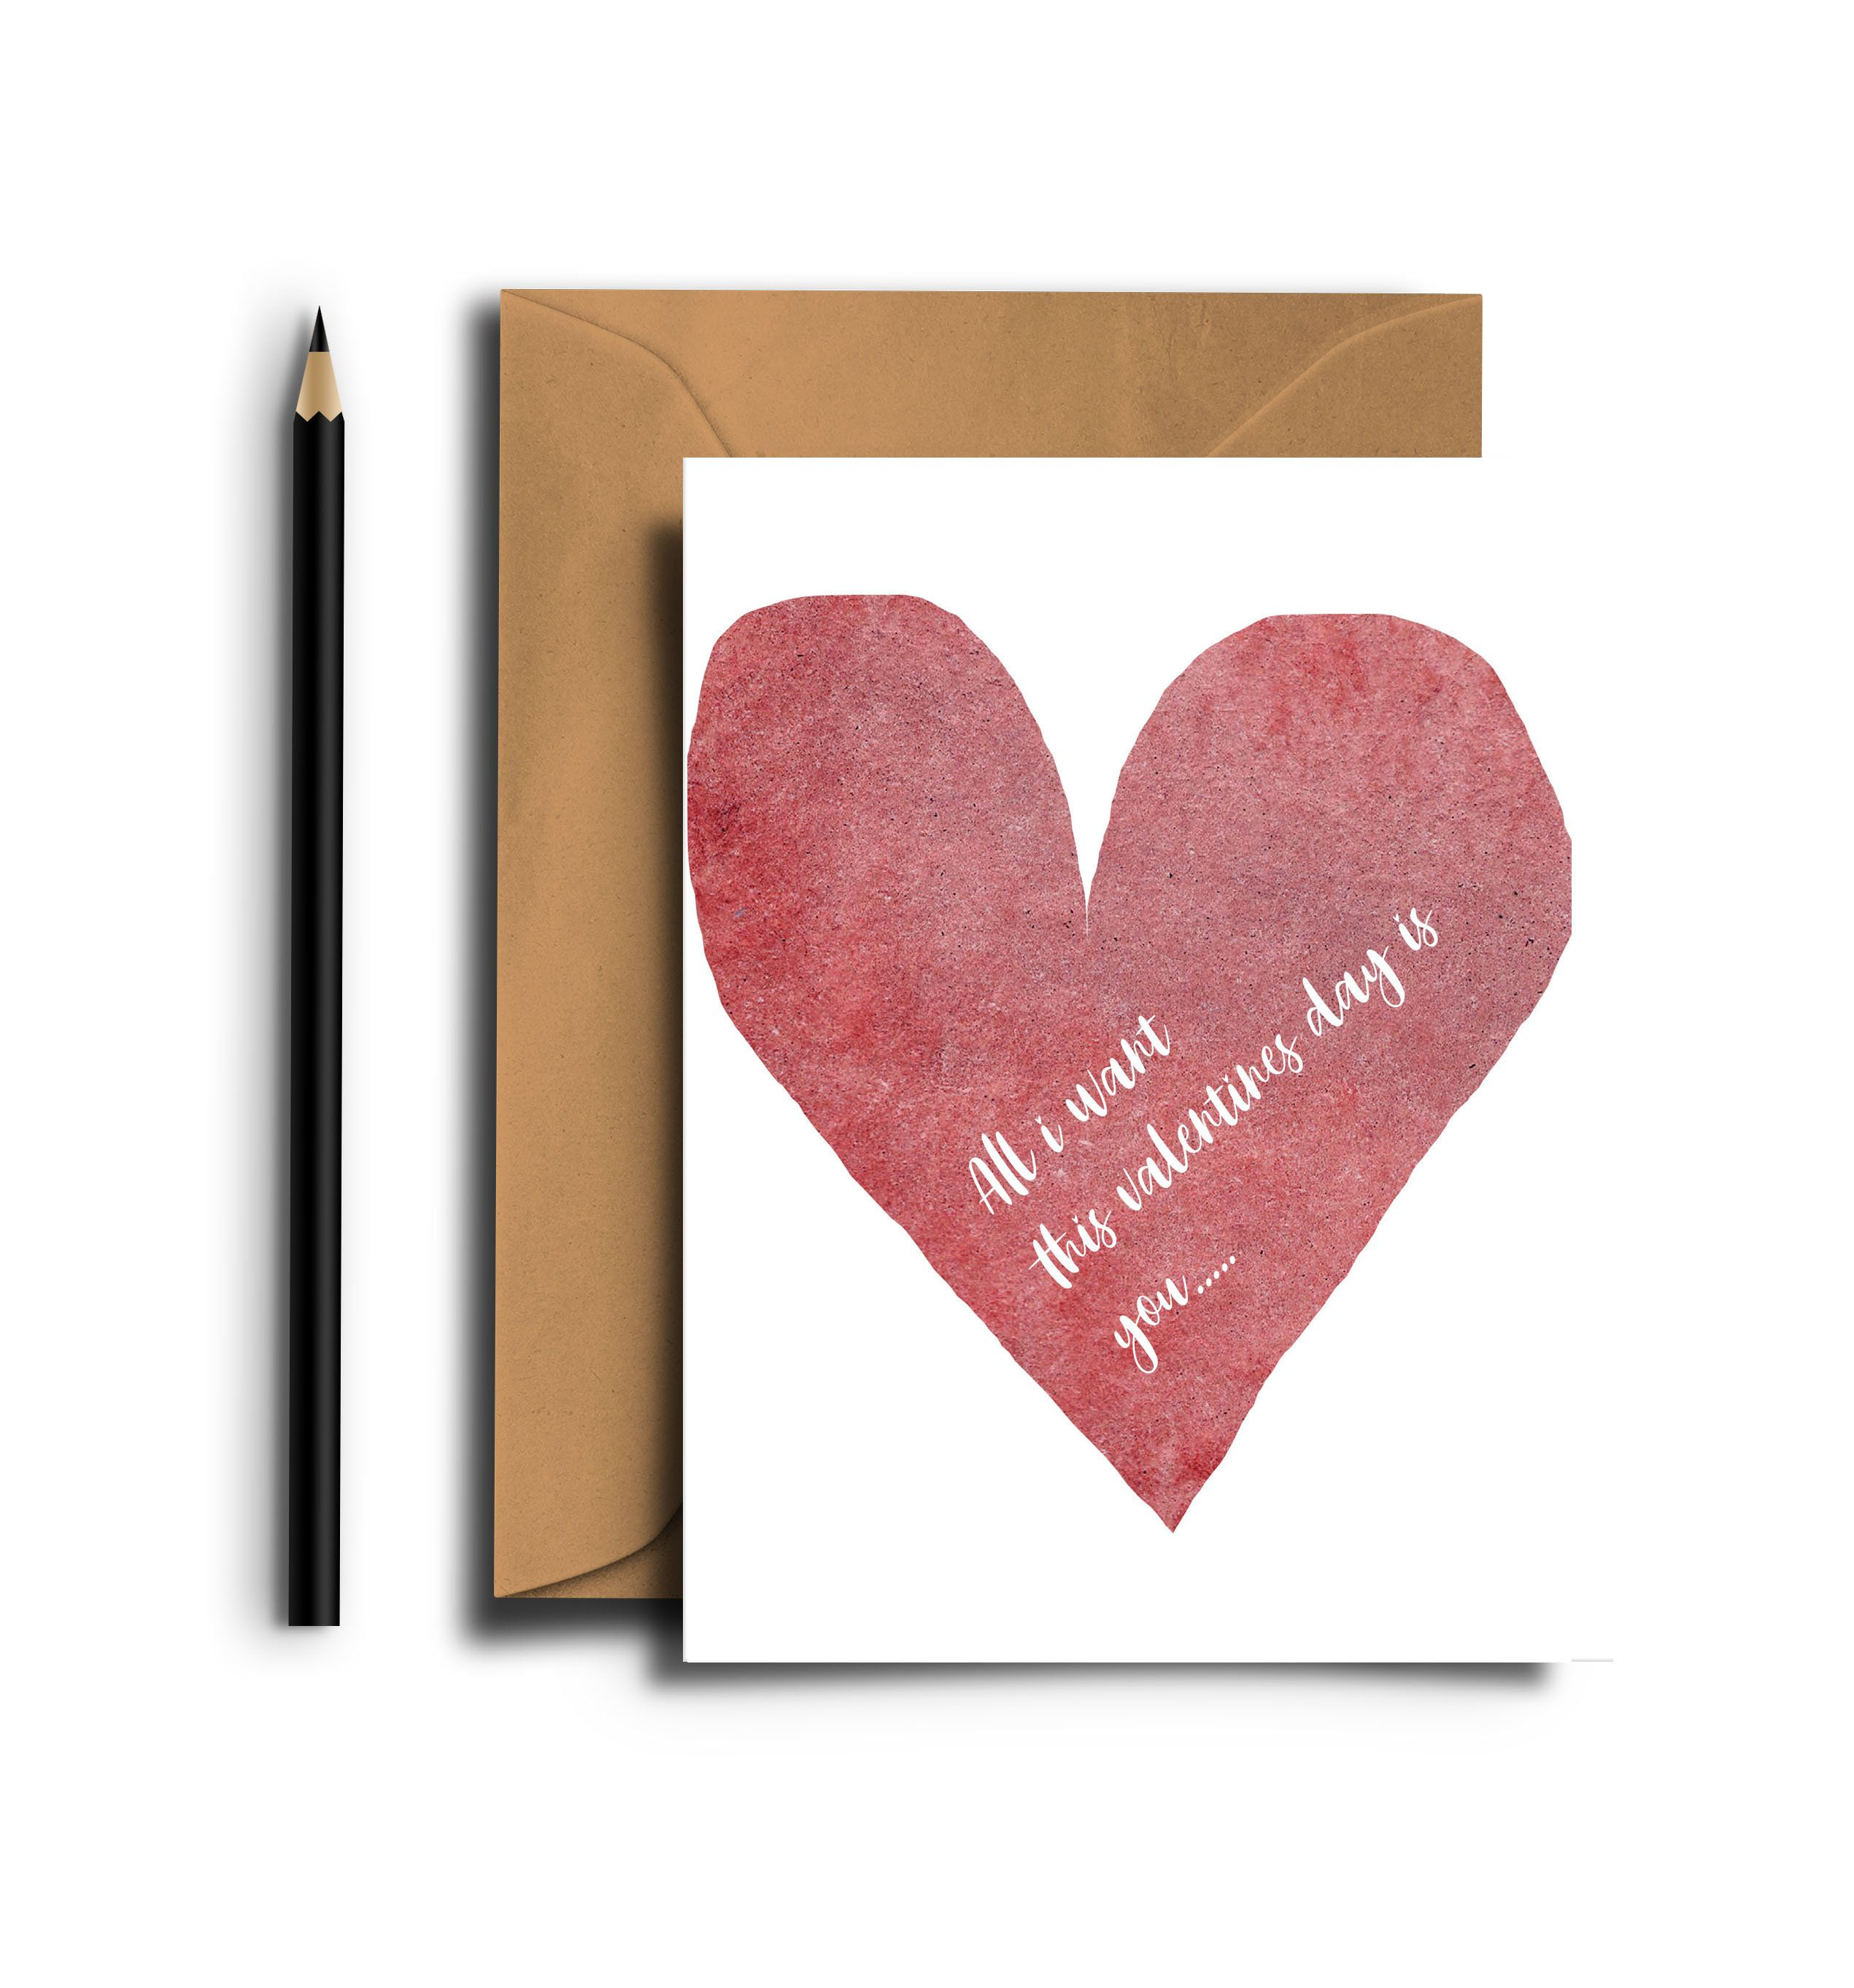 Printable Valentines Card For Him Valentines Card For Husband Valentines Day Card Printable Romantic Card Valentines Heart All I Want In 2020 Valentines Card For Husband Valentines Cards Romantic Cards